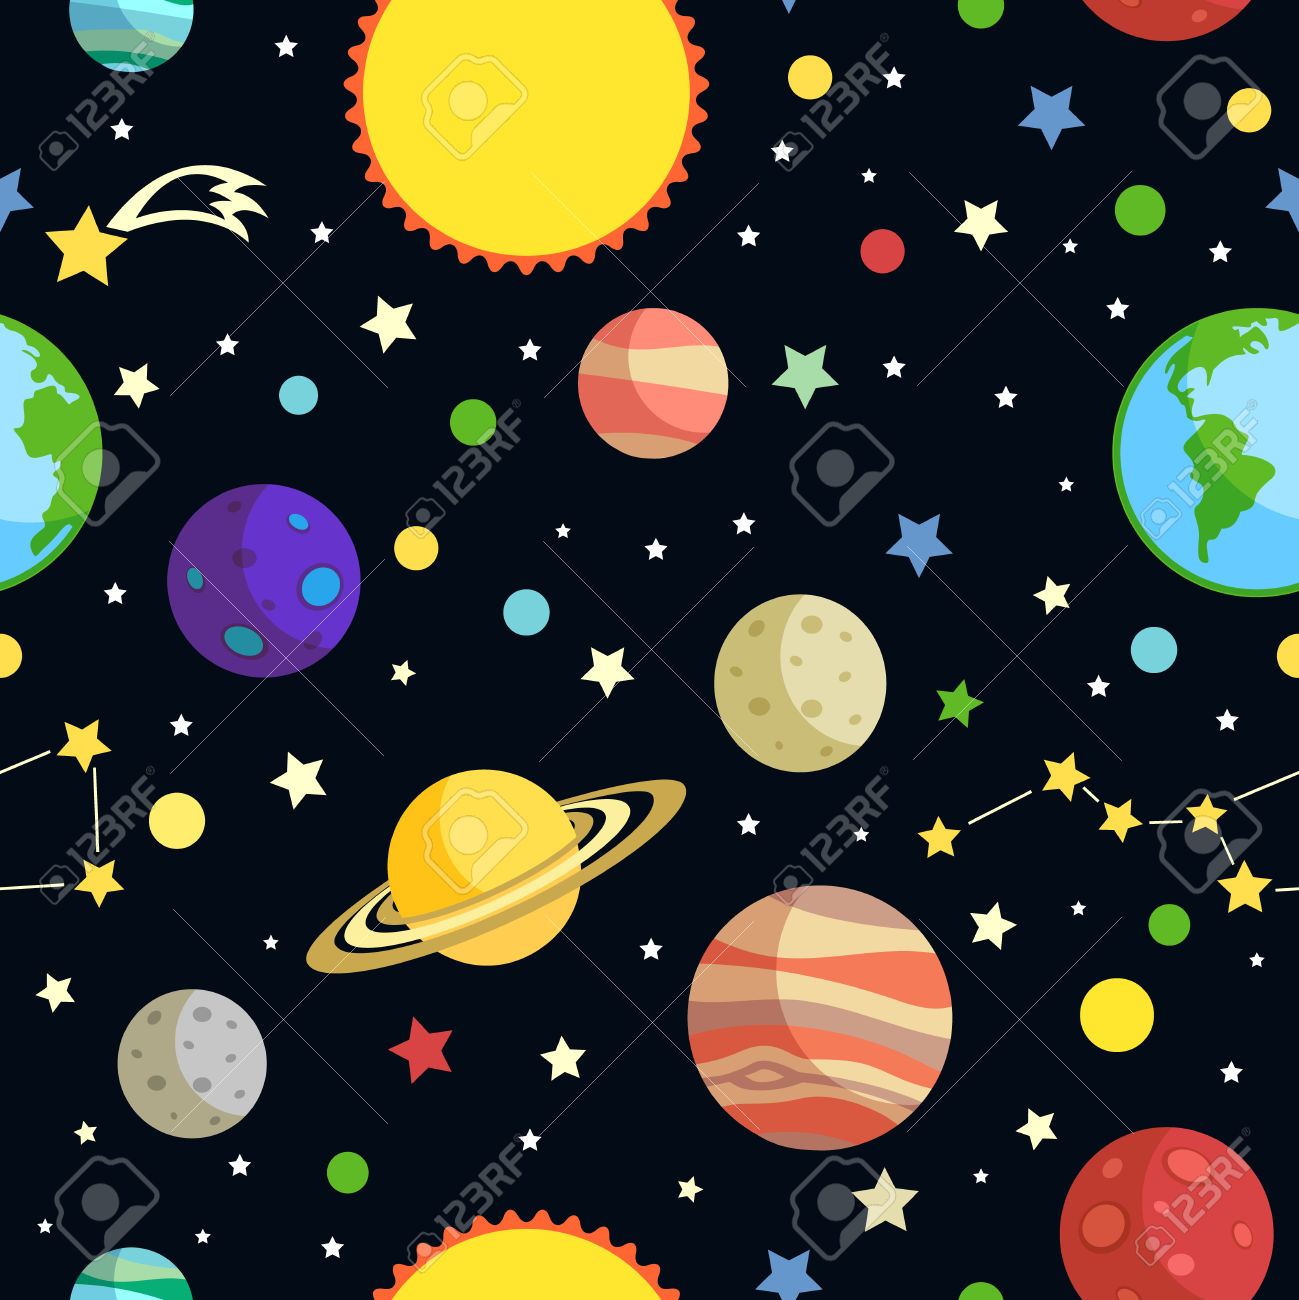 Universe clipart space background Https://www html Space Discover hu/blank